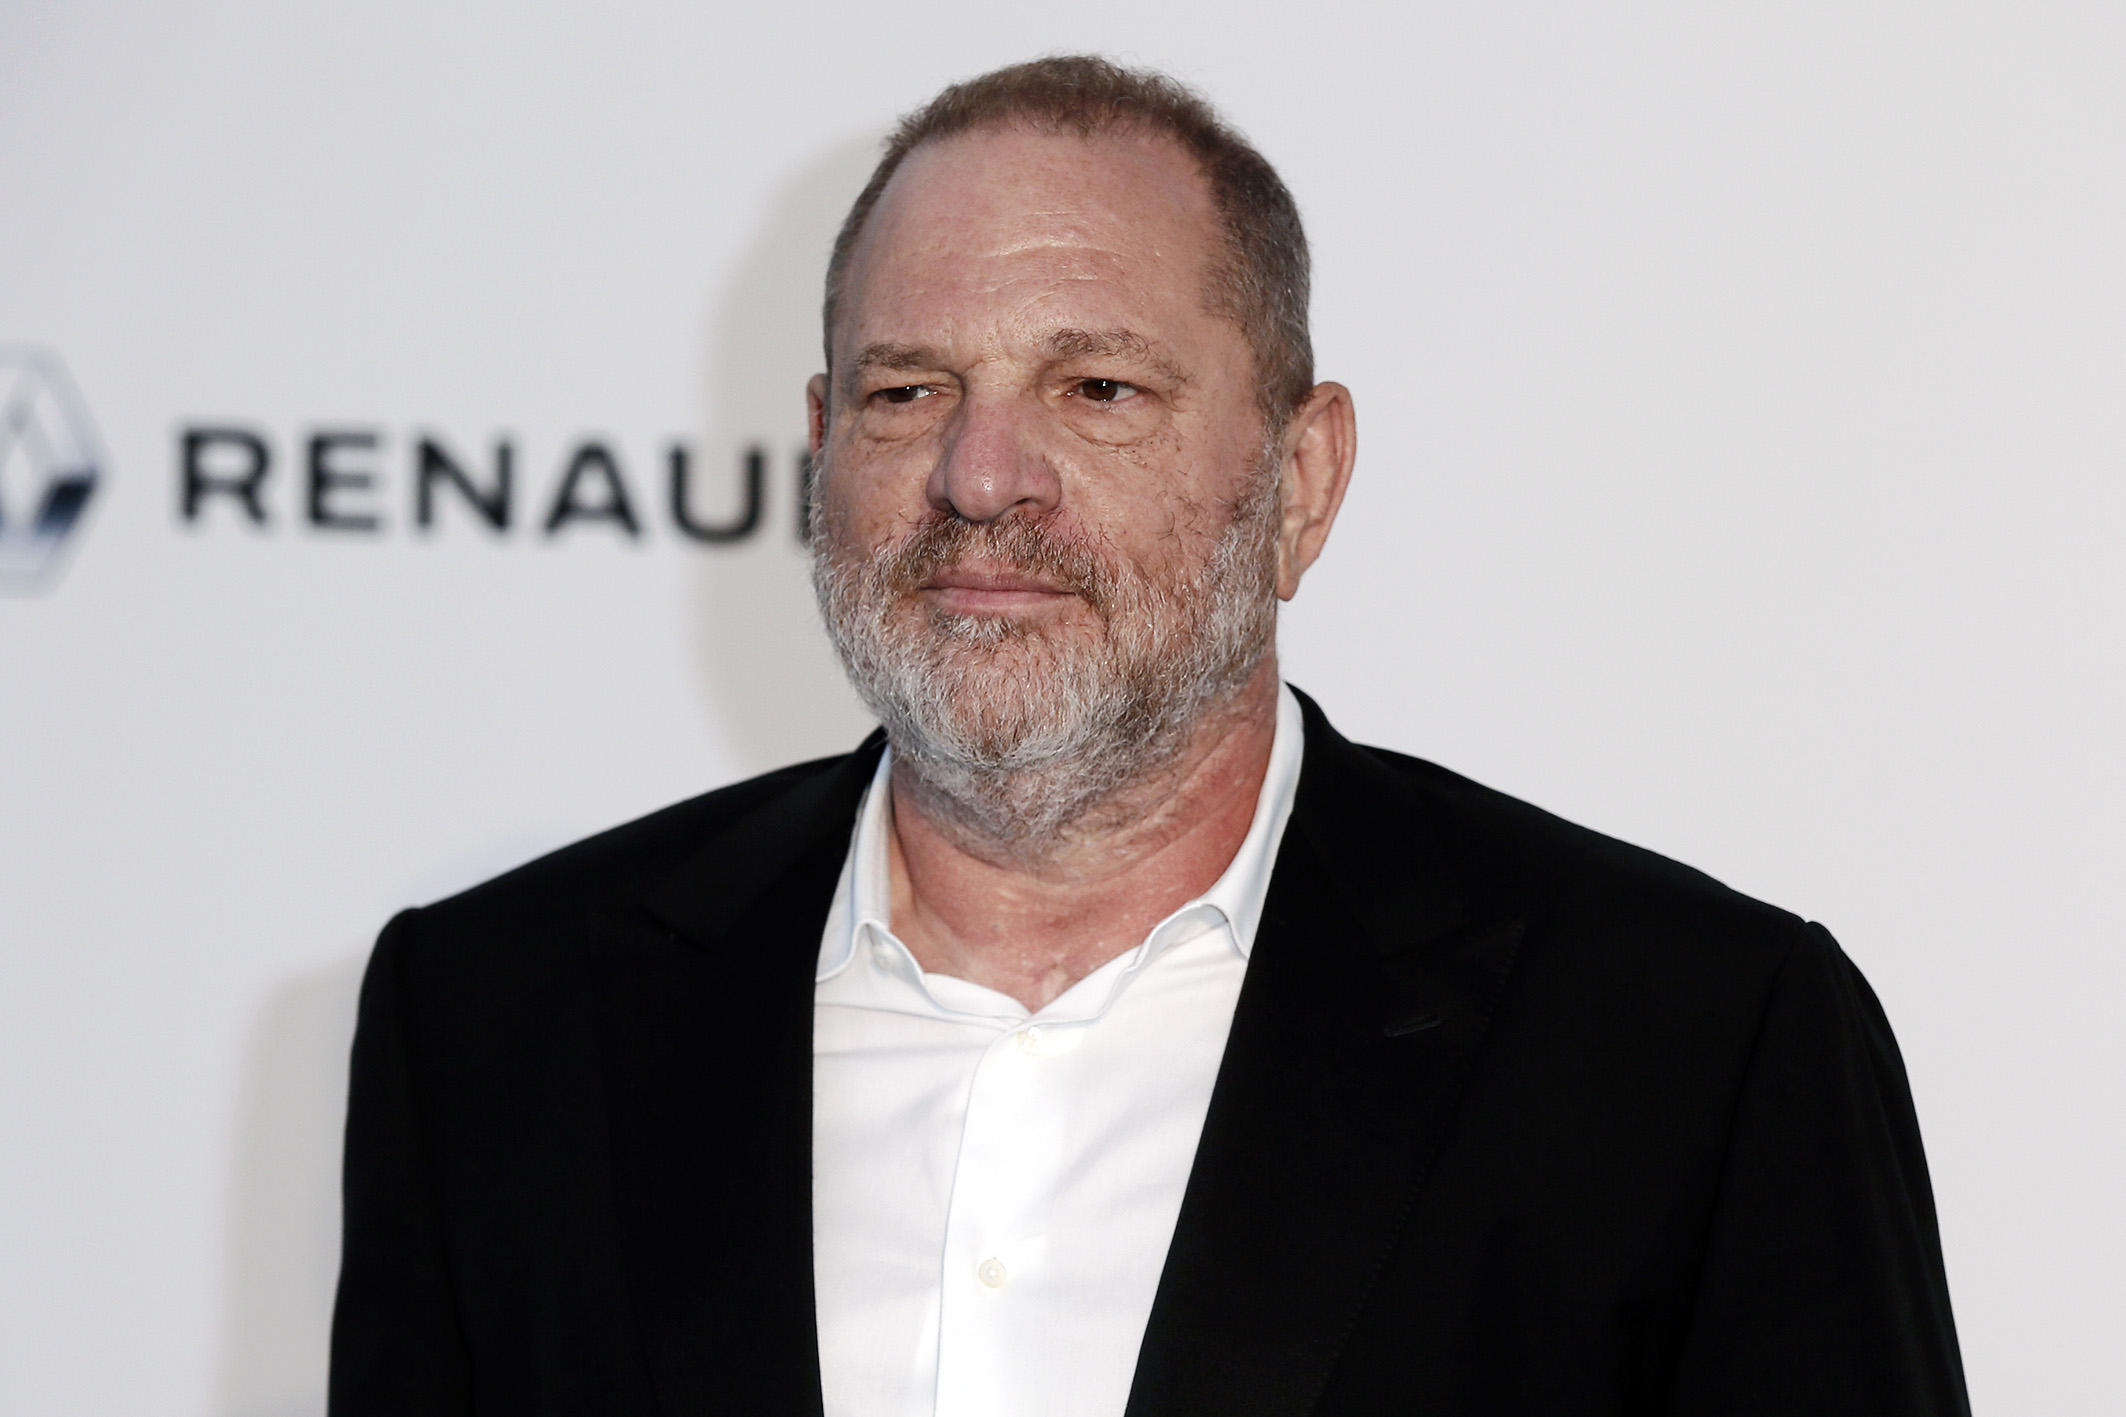 Harvey Weinstein at the 70th Cannes Film Festival - amfAR's Cinema against AIDS Gala on May 25, 2017. (KIKA/WENN.com){&amp;nbsp;}<p></p>